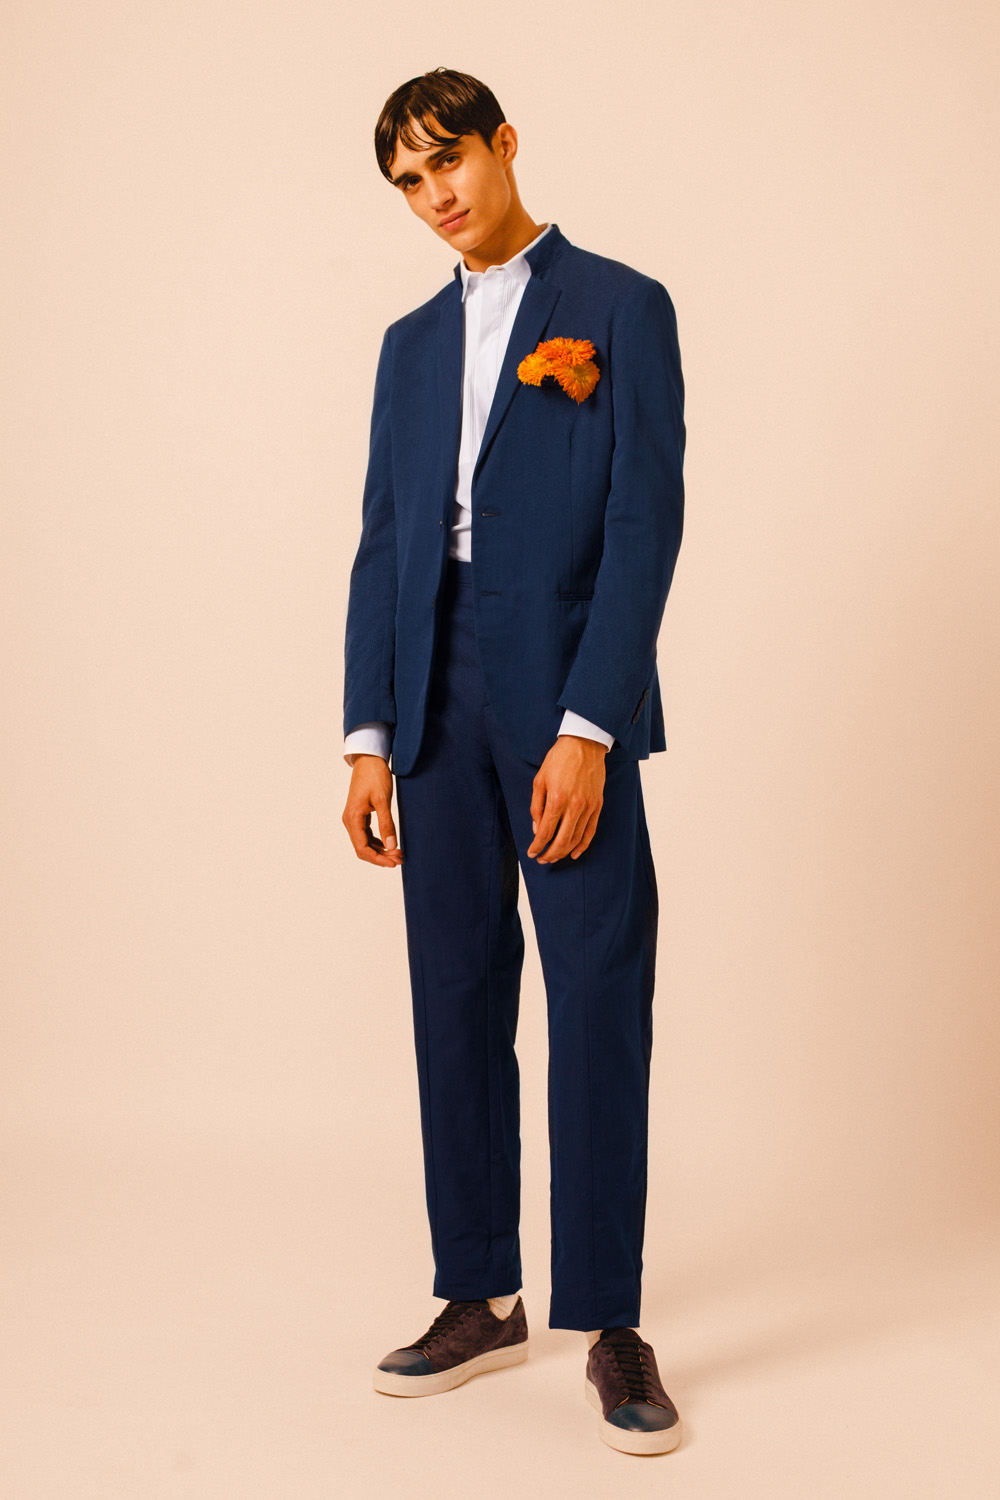 fatimayarie-advanilondon-darkblue-suit-menswear-tailored-img_2497